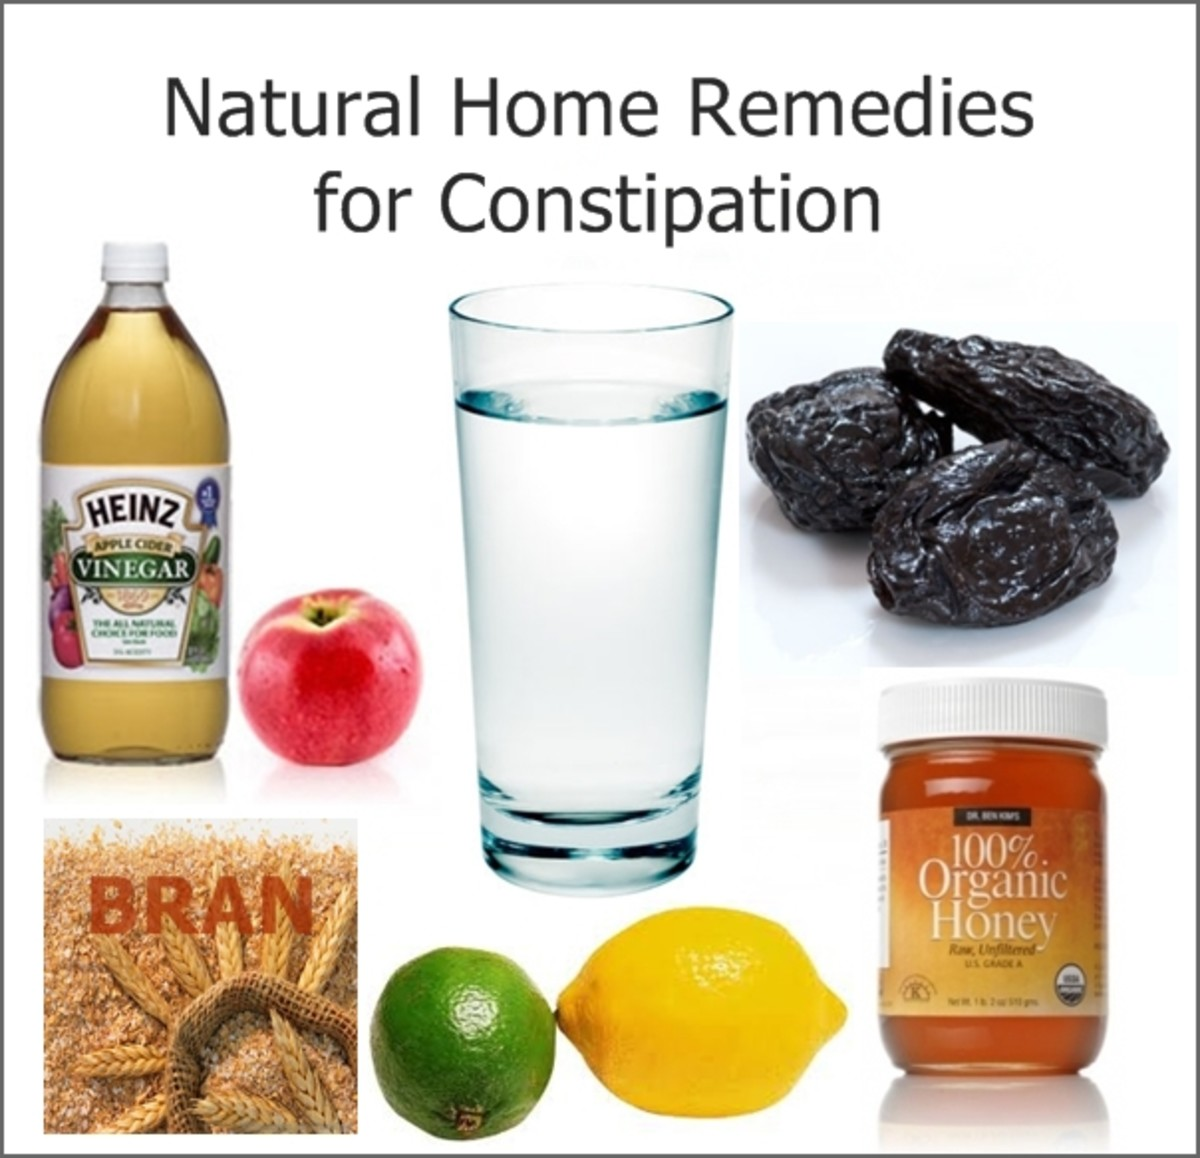 10 Best Natural Home Remedies for Constipation, Including